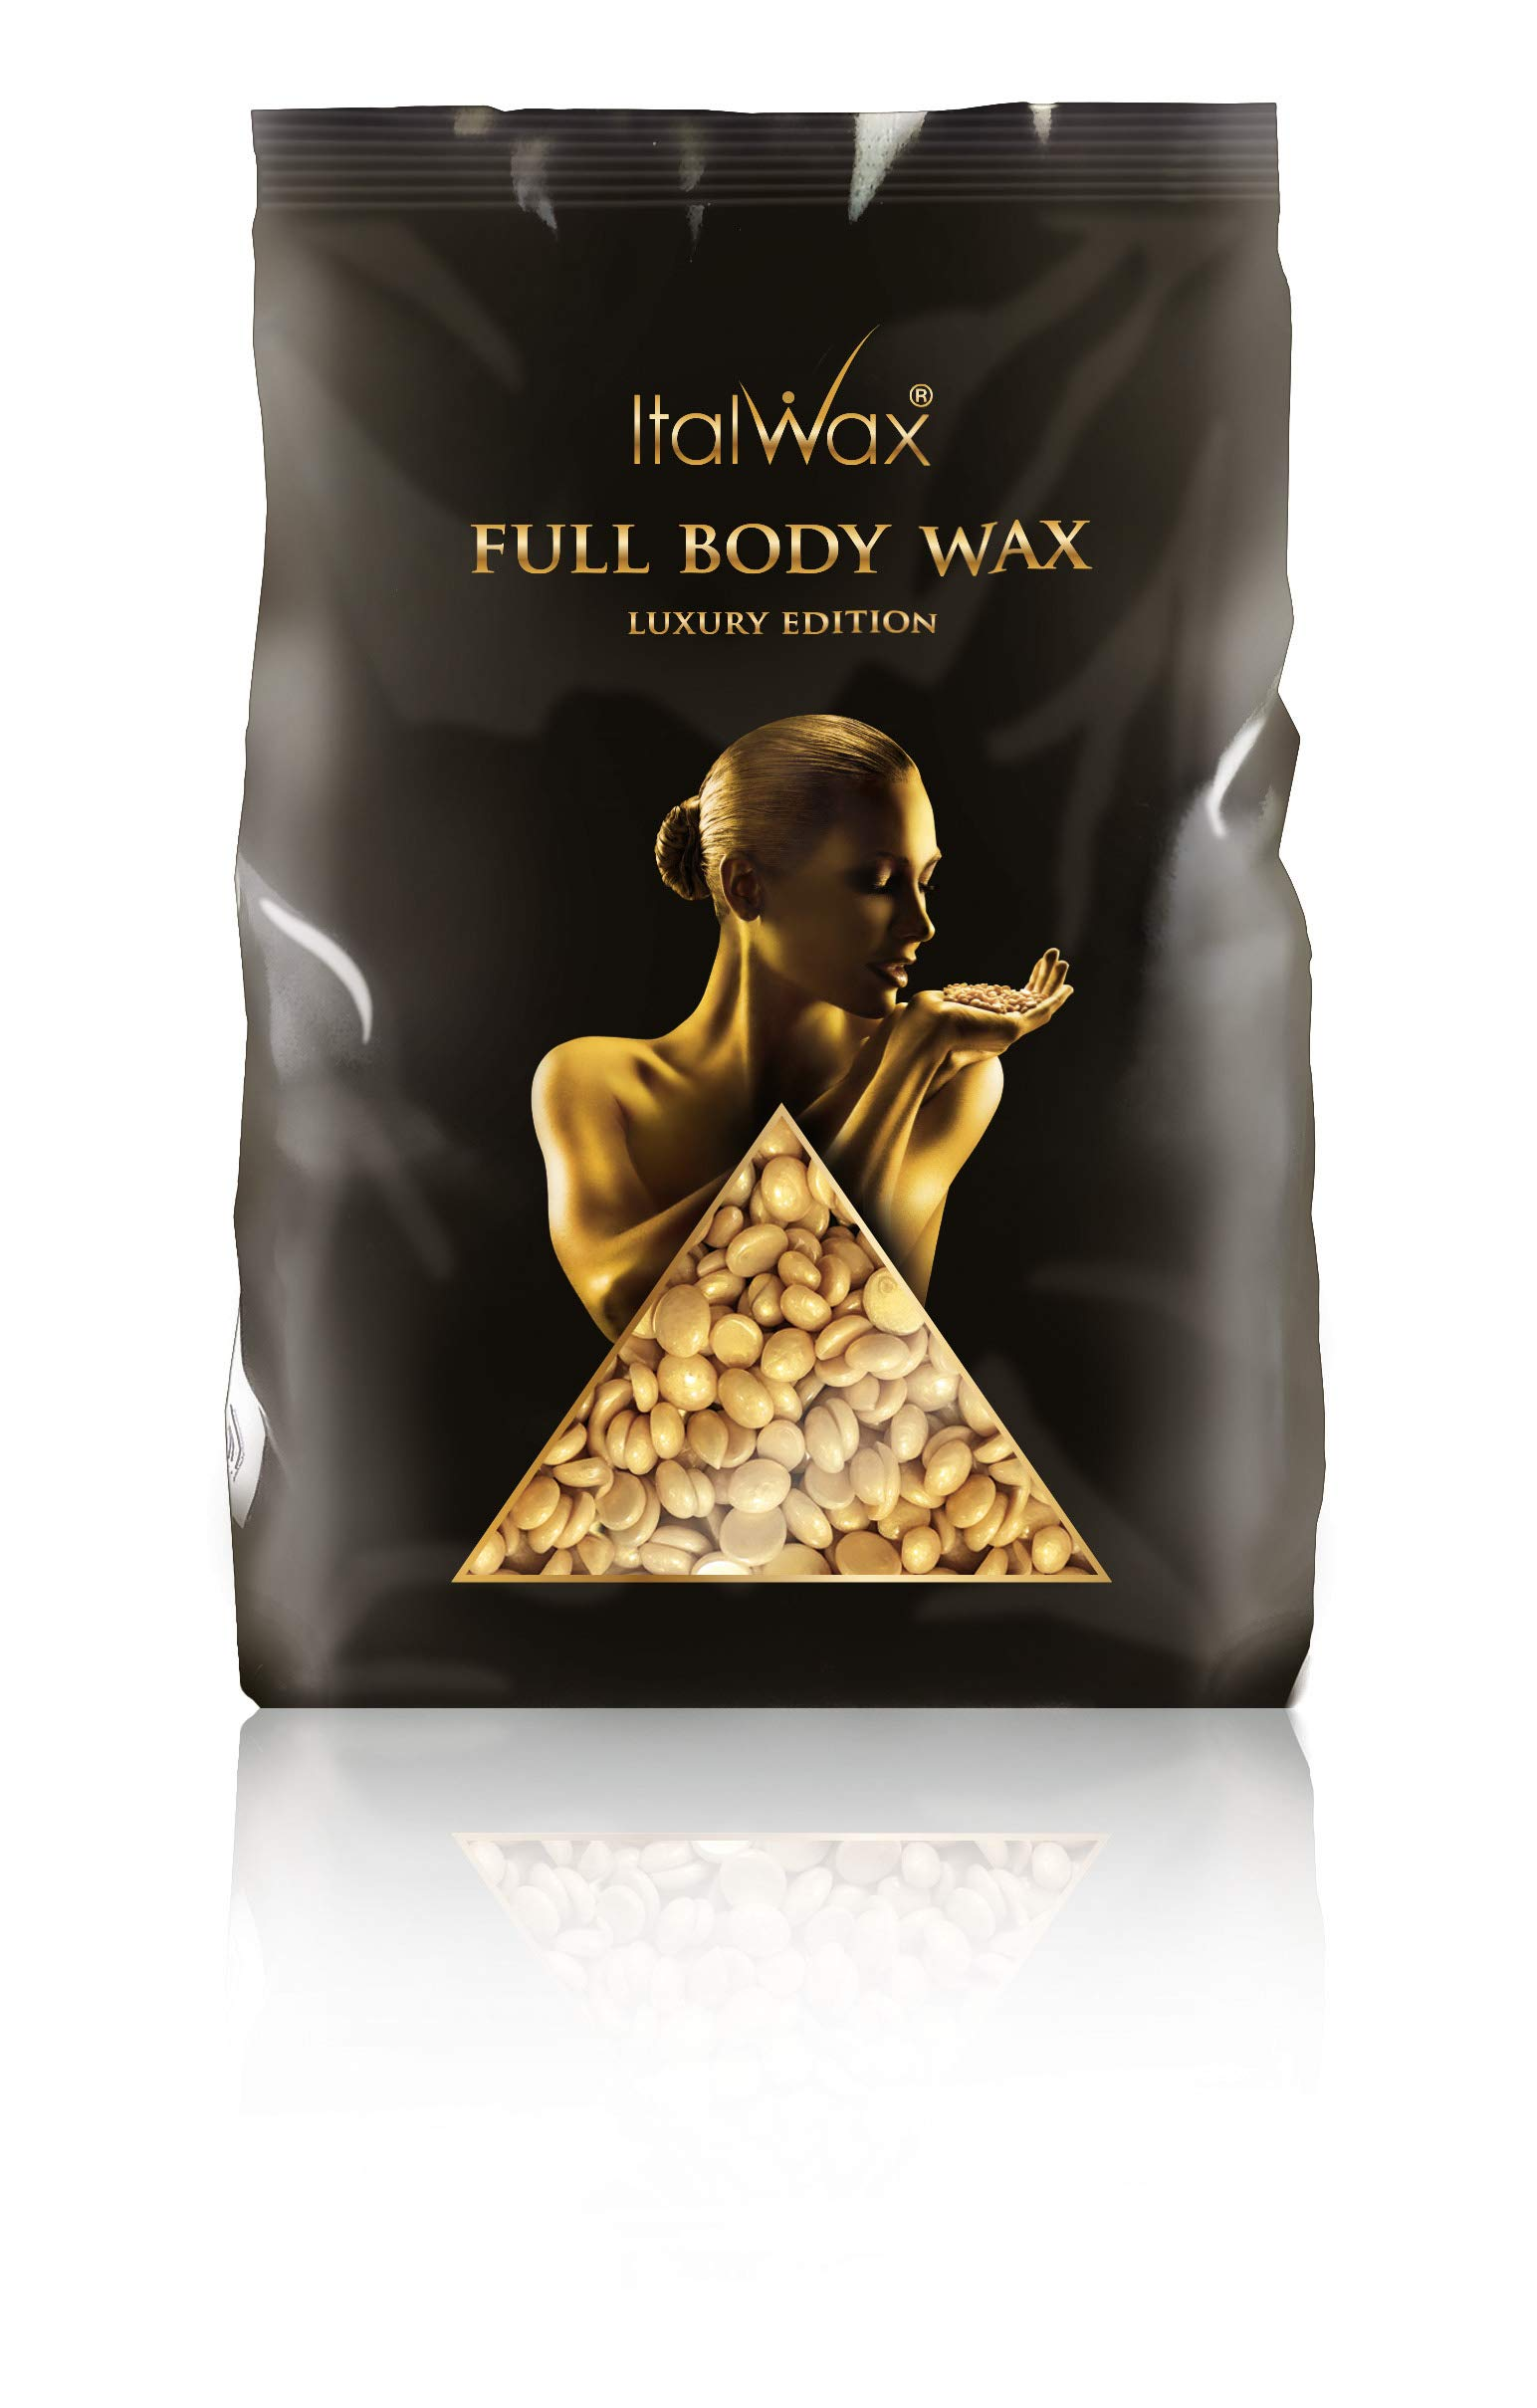 ITALWAX Hypoallergenic Film Wax - Full Body Wax Limited Edition